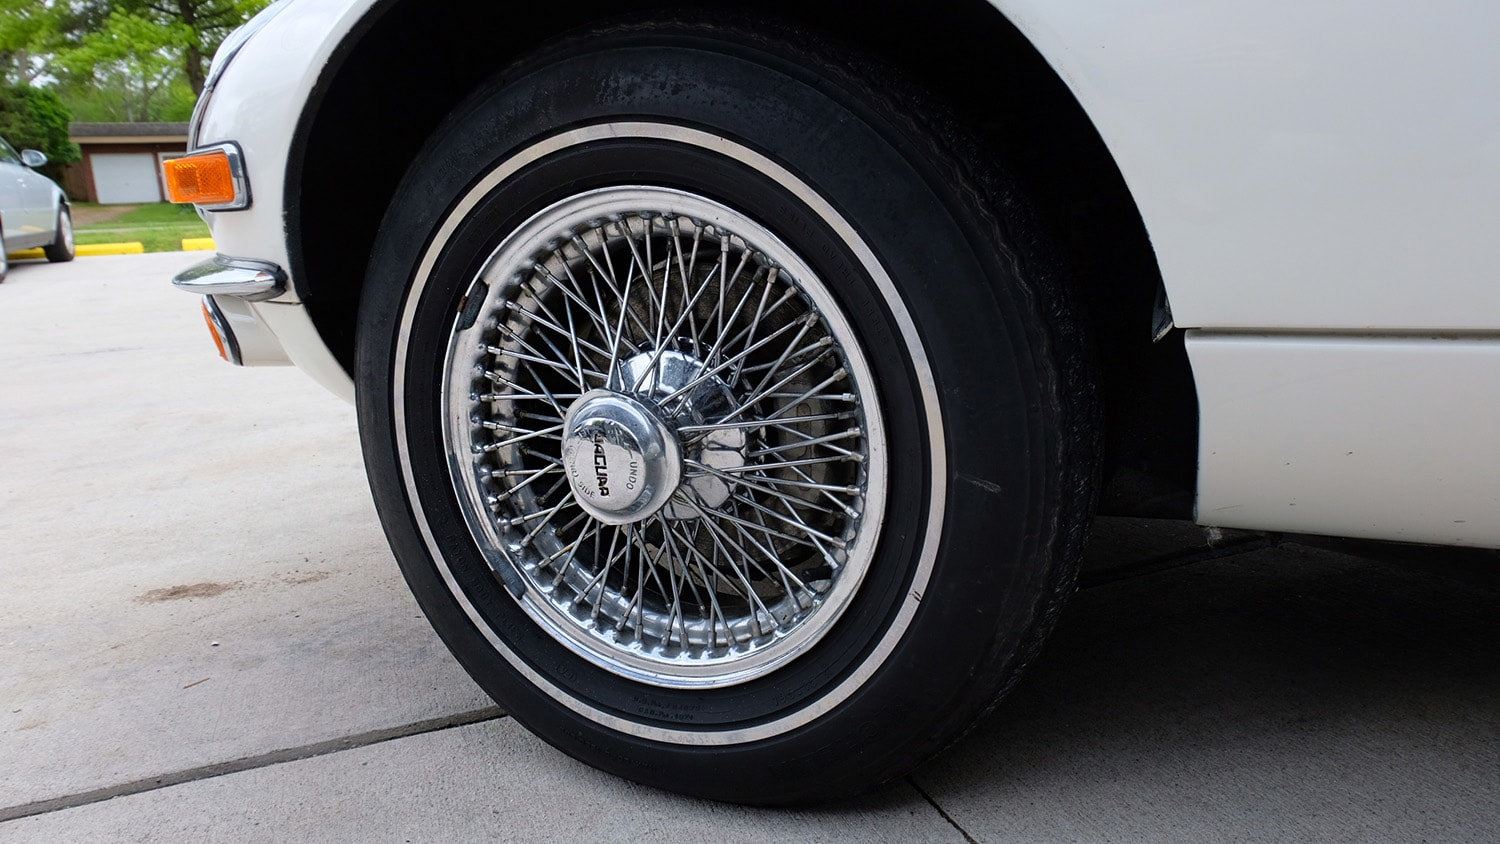 1972 Jaguar XKE Convertible Wheel.JPG